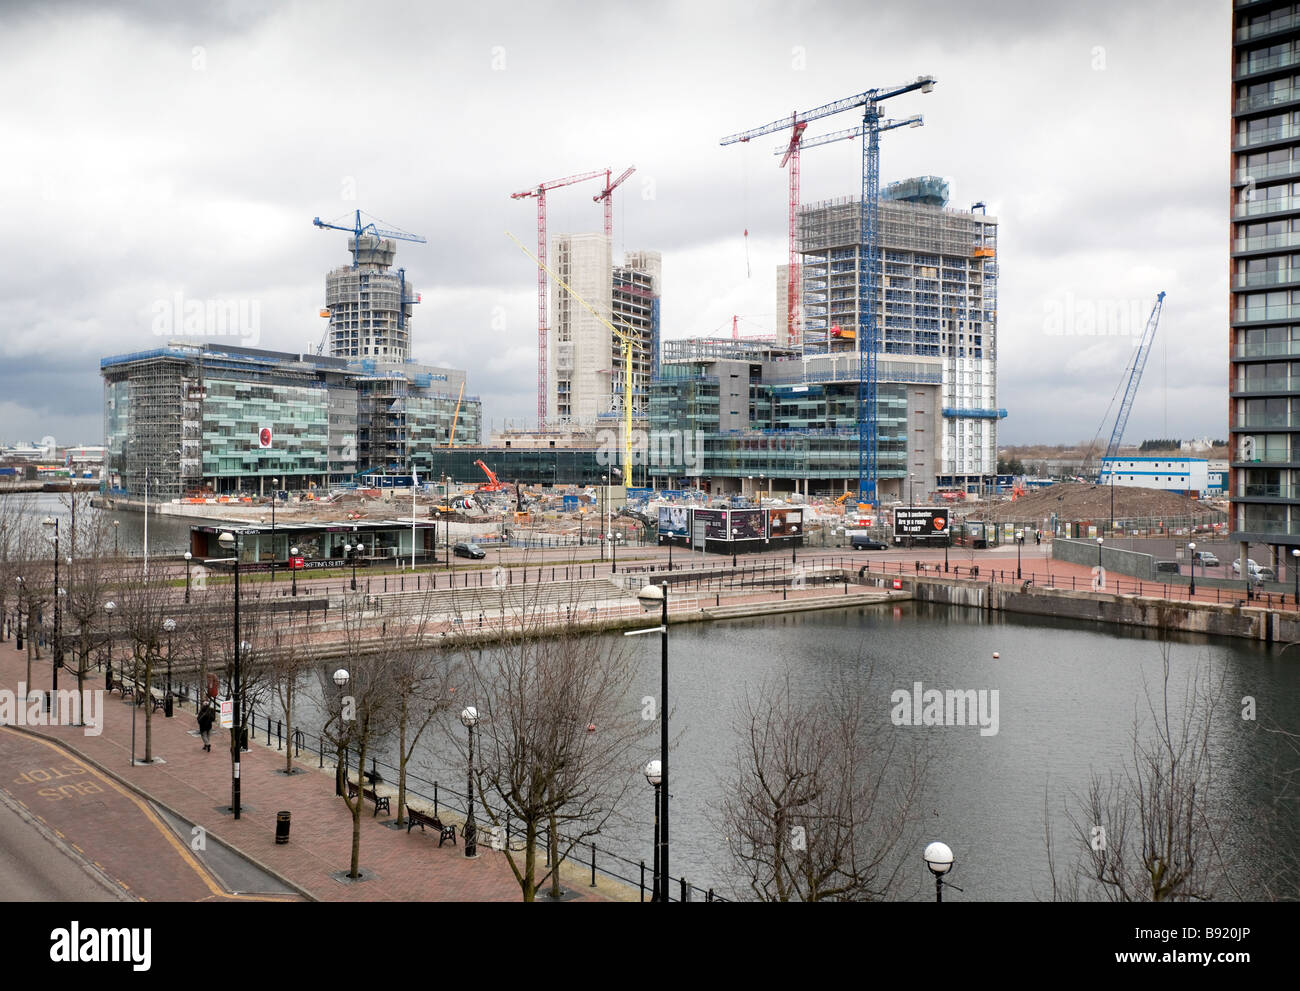 A view of the partially built BBC Manchester headquarters at Salford Quay in Greater Manchester - Stock Image